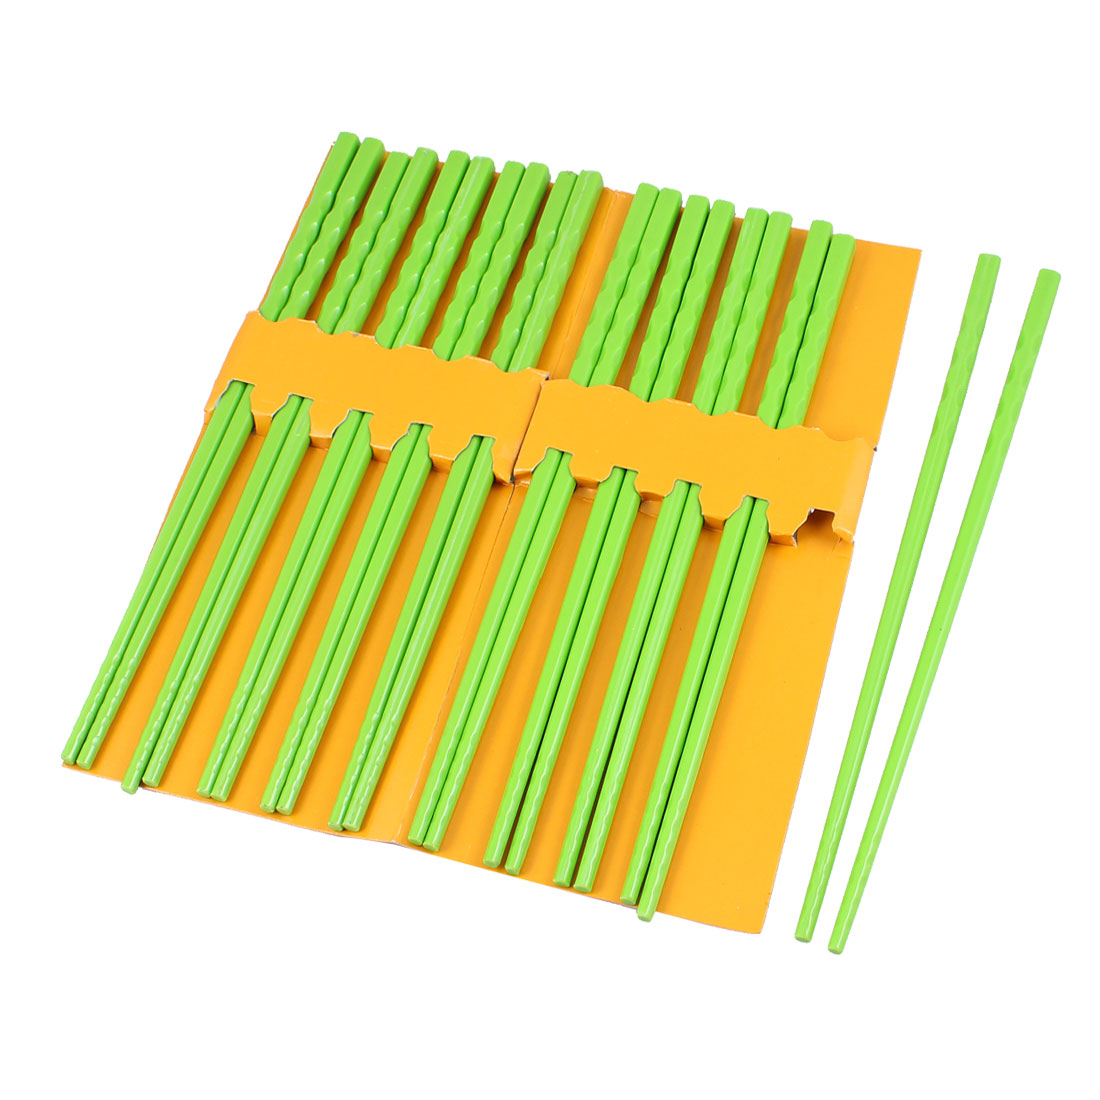 10 Pairs Kitchen Dishware Nonslip Plastic Chopsticks Green